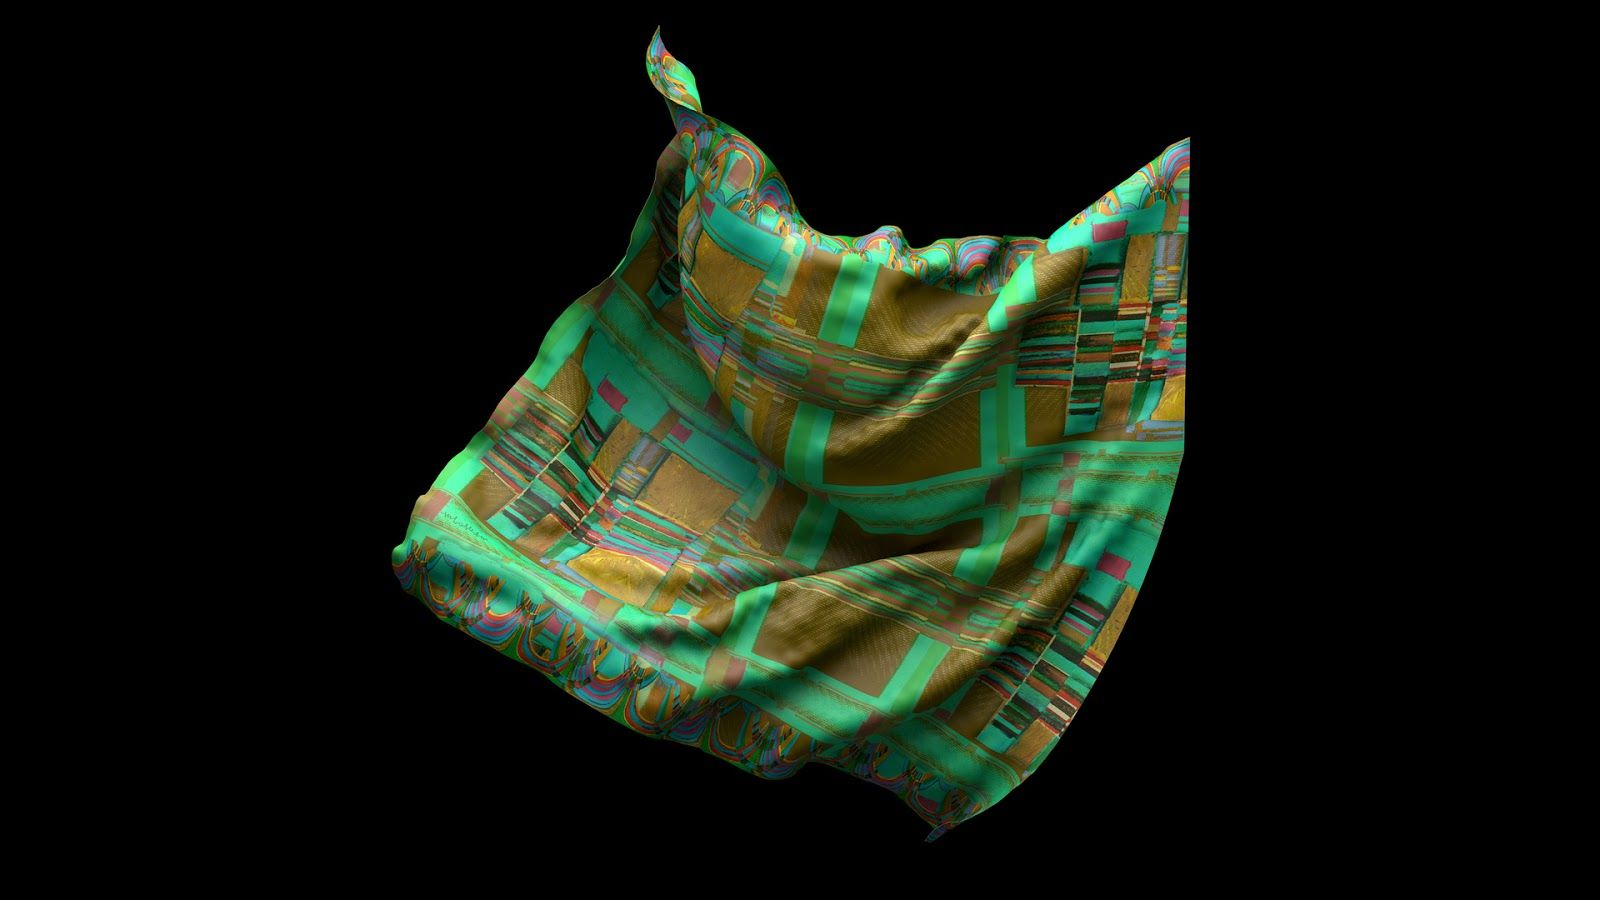 LoVid Aluminism artwork and silk scarf